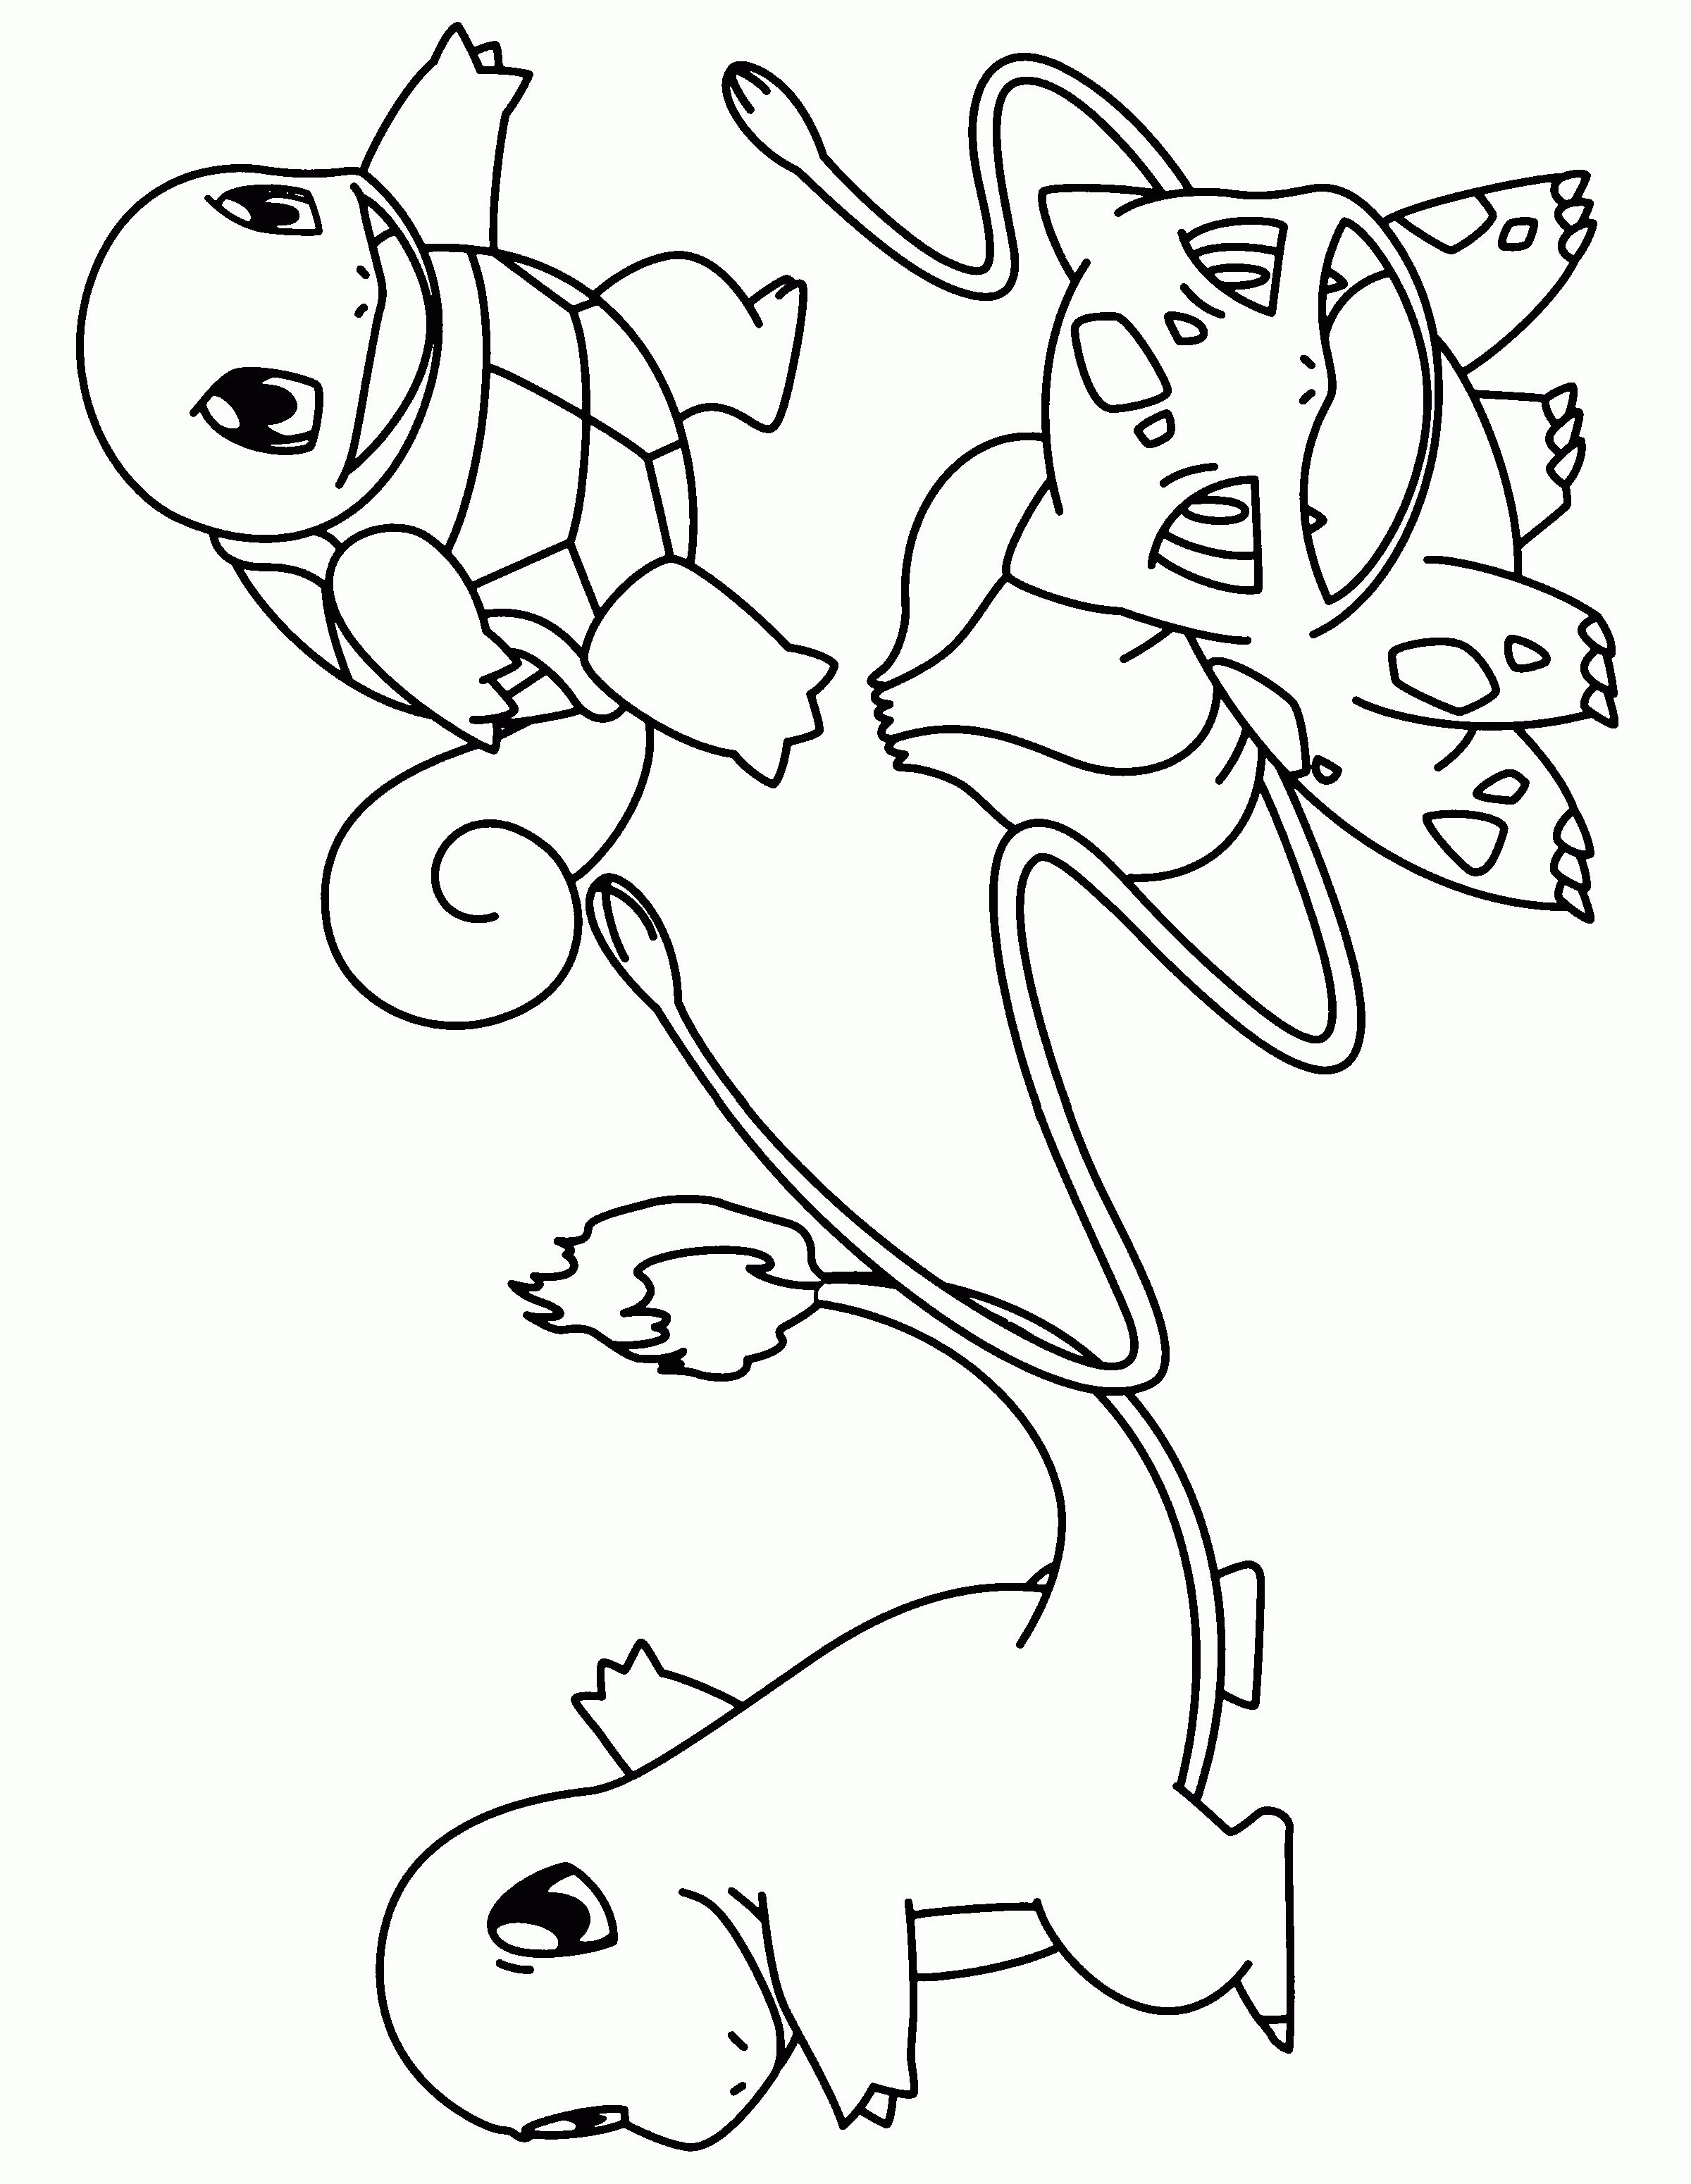 Squirtle Coloring Page With Pokemon Squirtle Coloring Pages Aecost Pokemon Coloring Pages Pokemon Coloring Sheets Pokemon Coloring